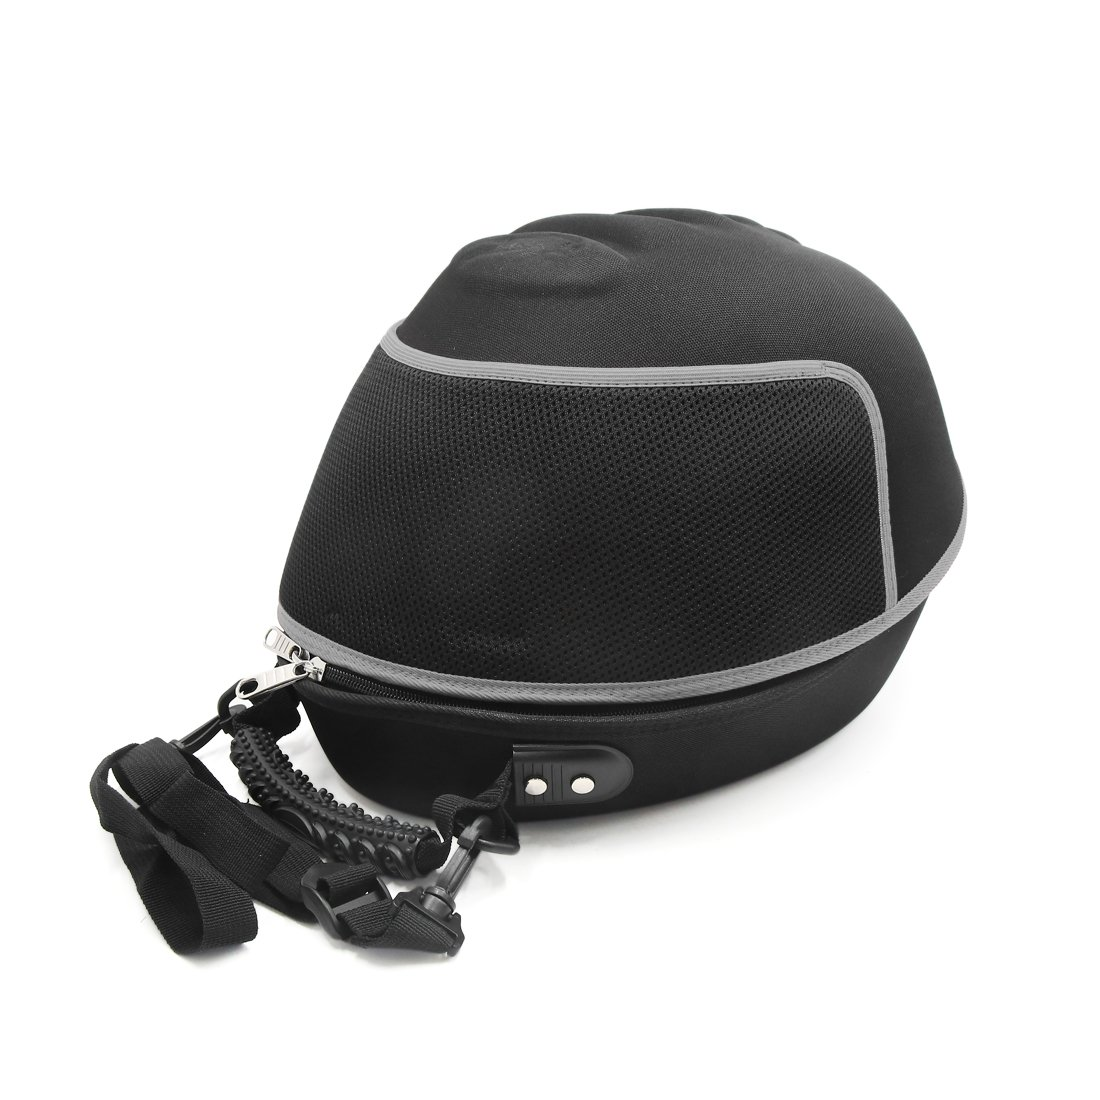 uxcell Black Gray Zipper Closure Case Bag Carrier Holder Backpack for Motorcycle